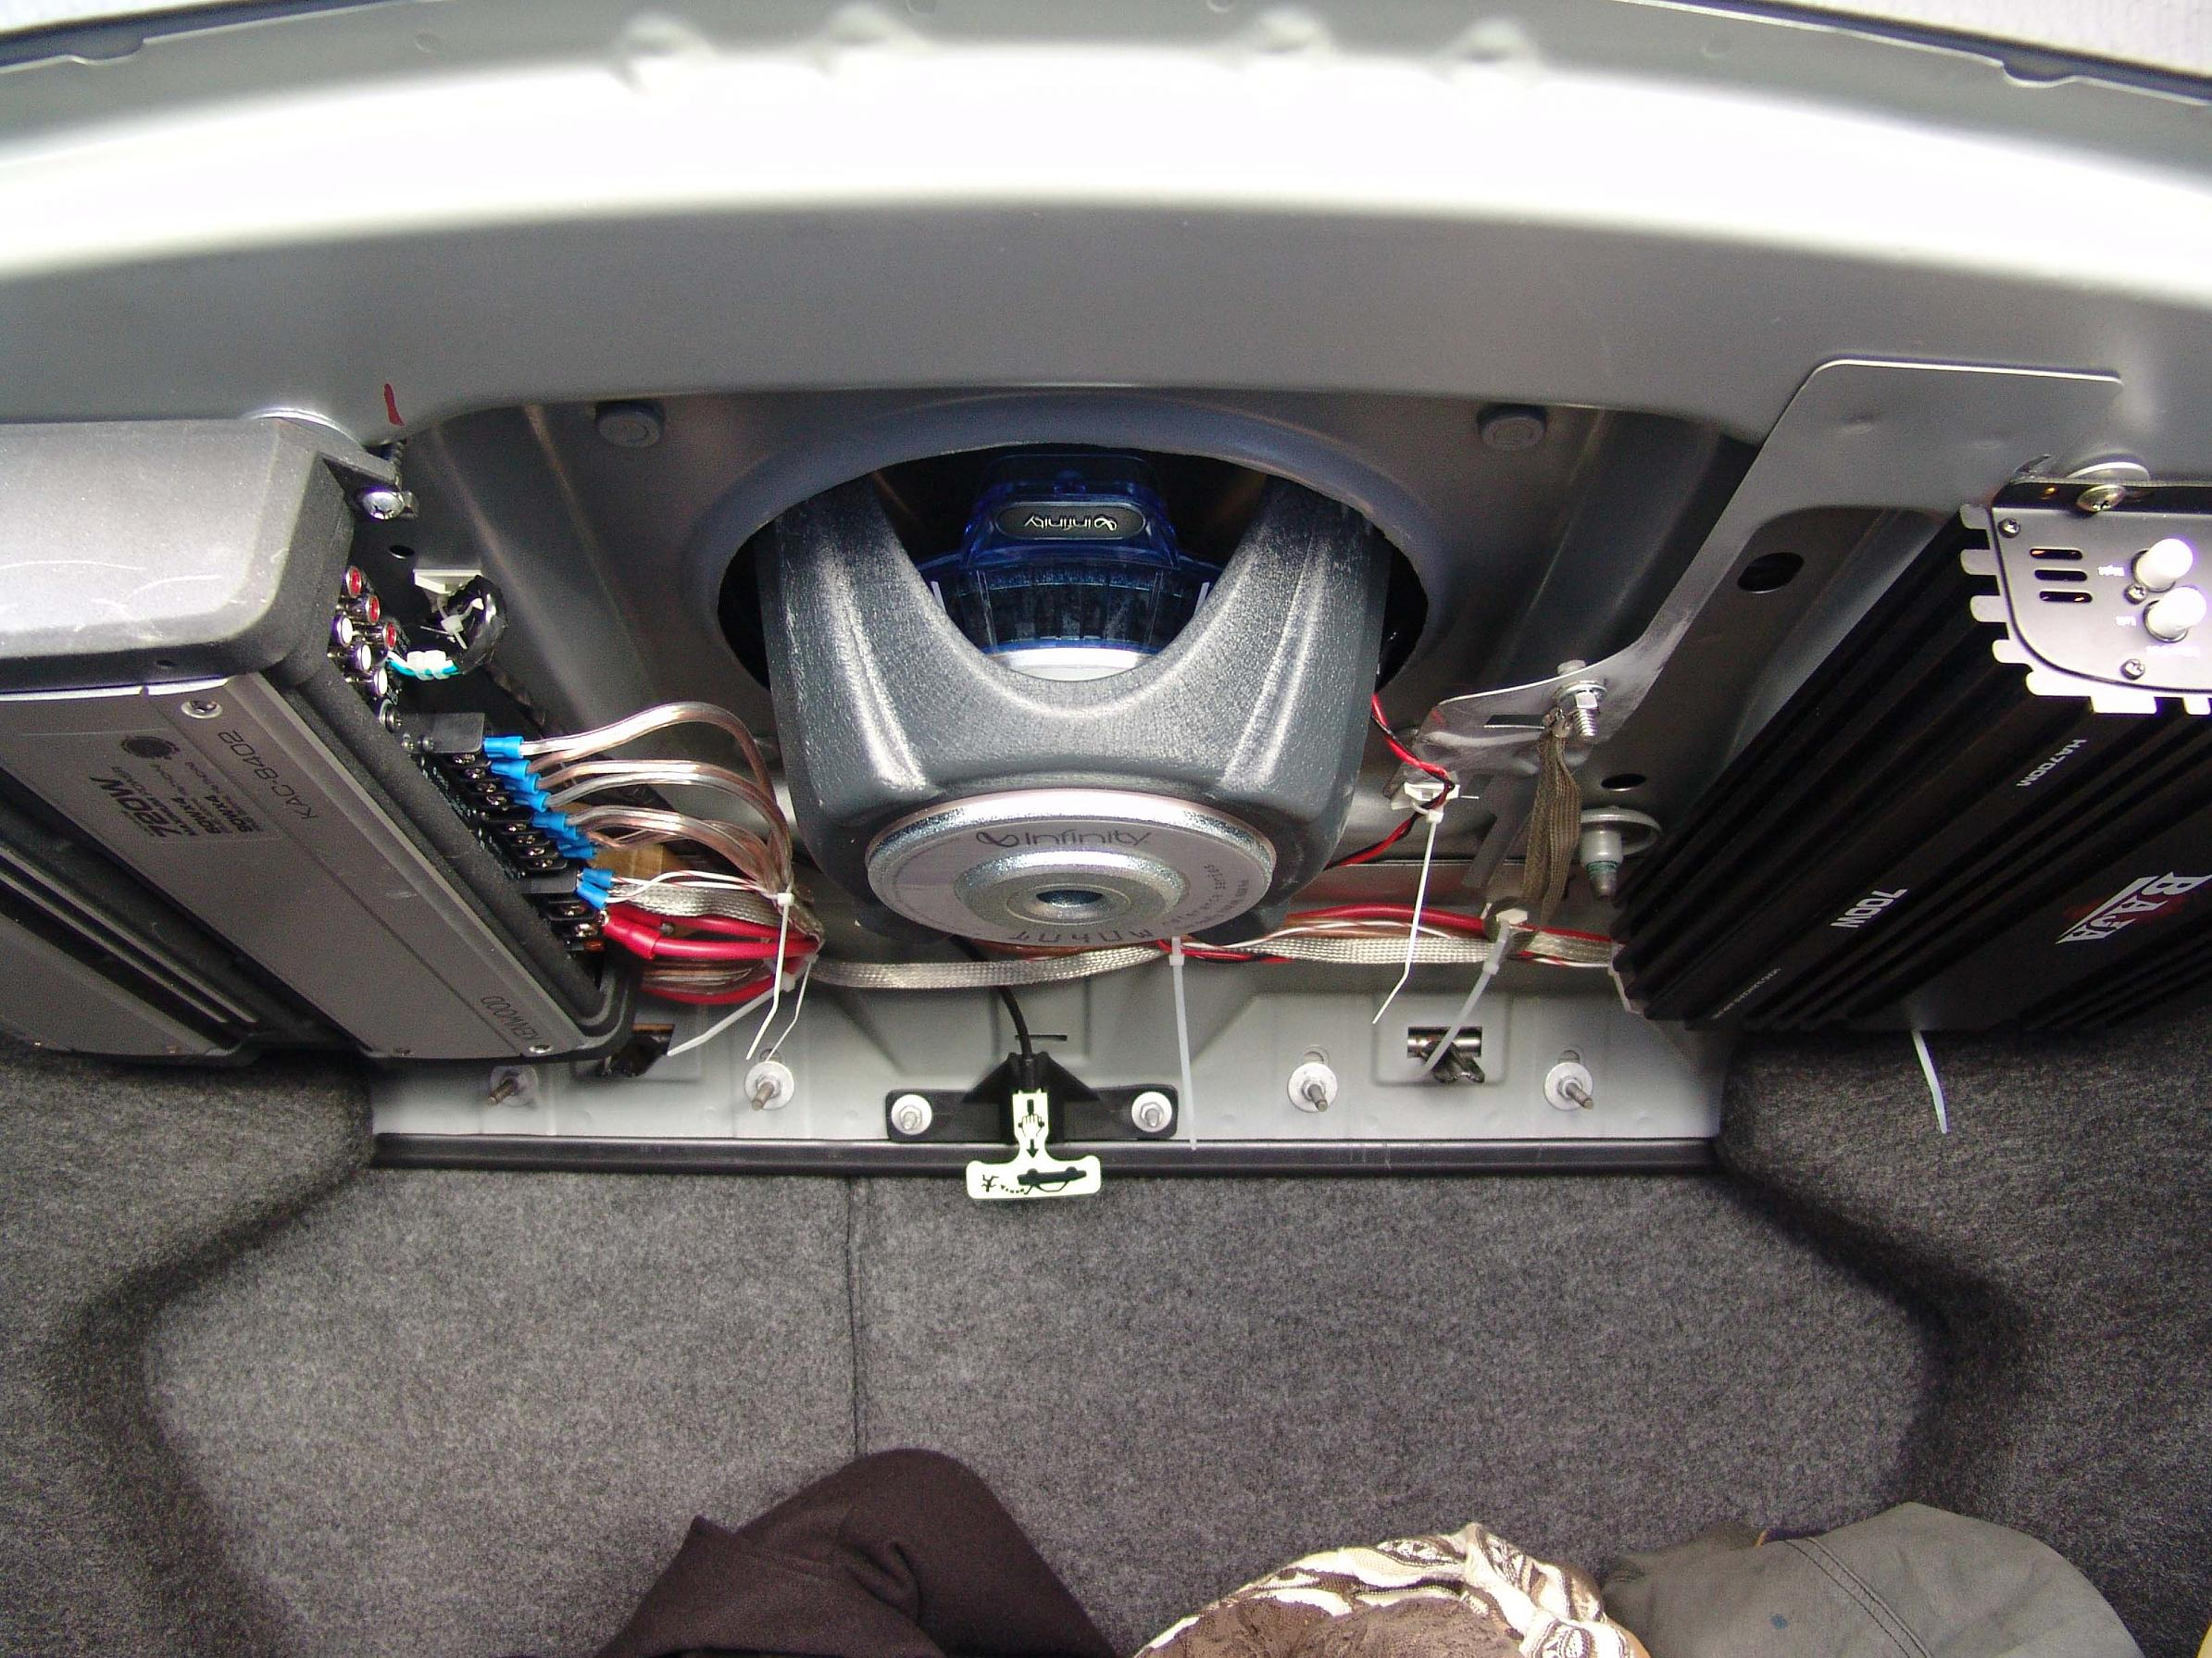 single subwoofer wiring diagram dual car stereo aftermarket and amp recommendations please